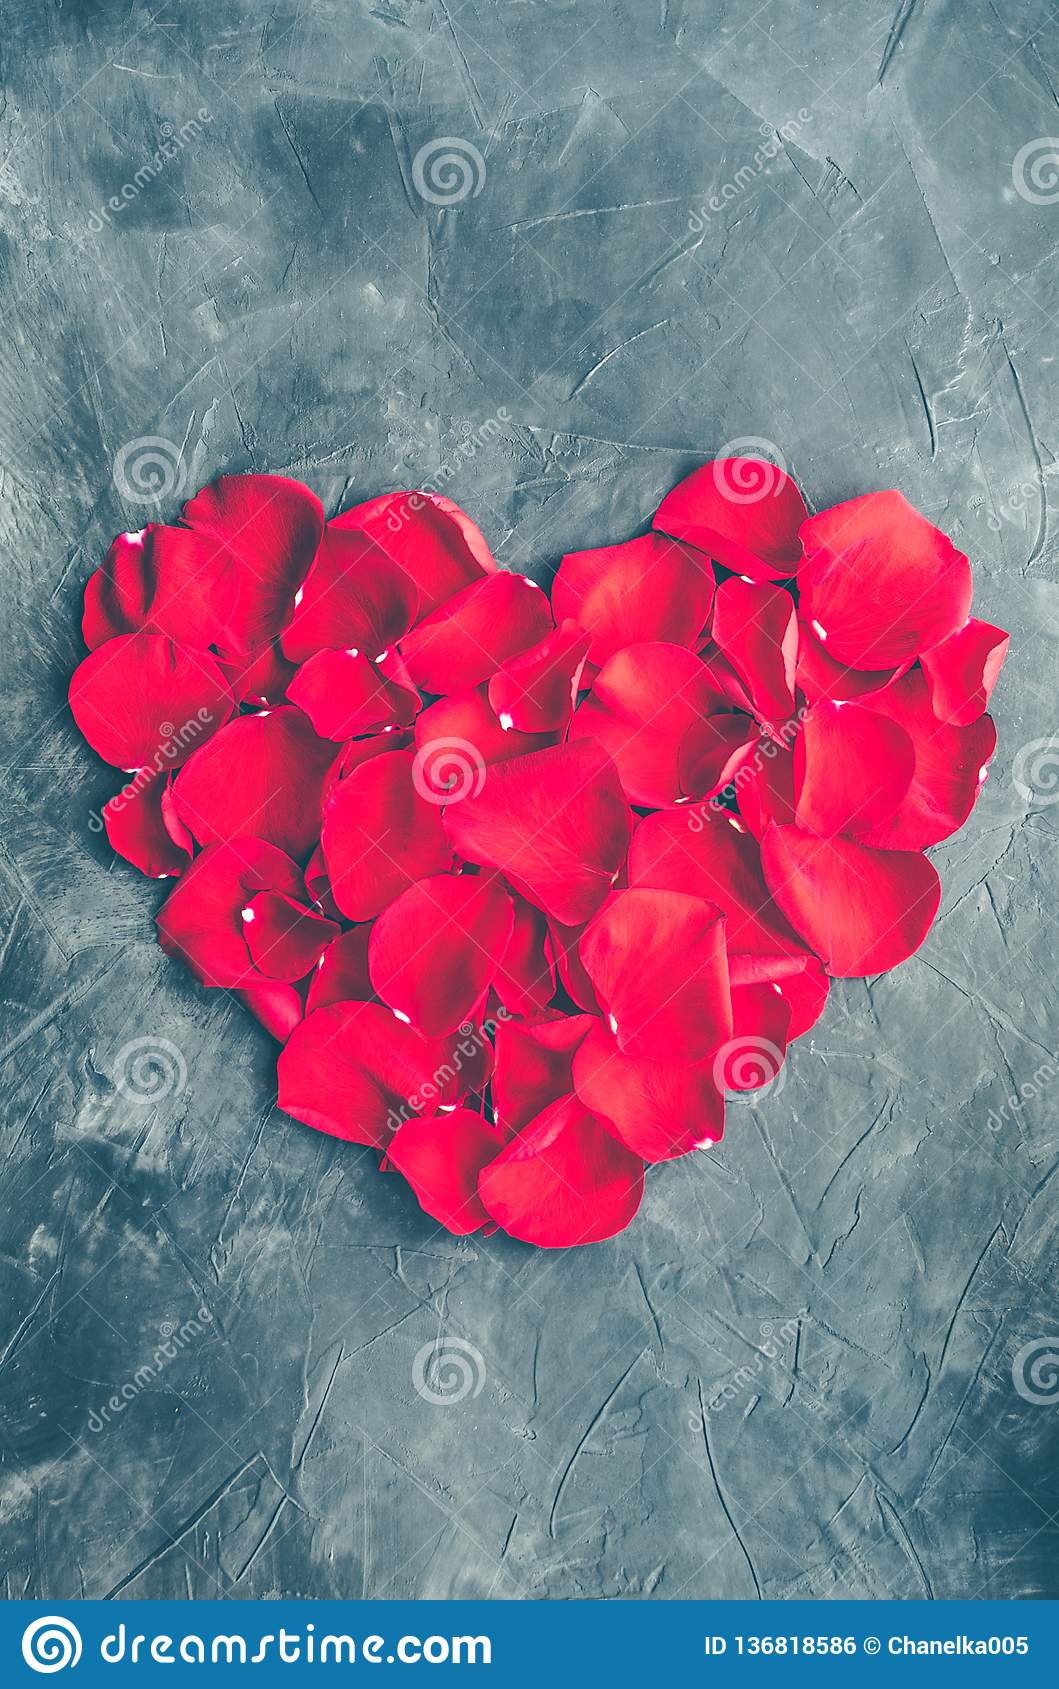 Heart made of red petals